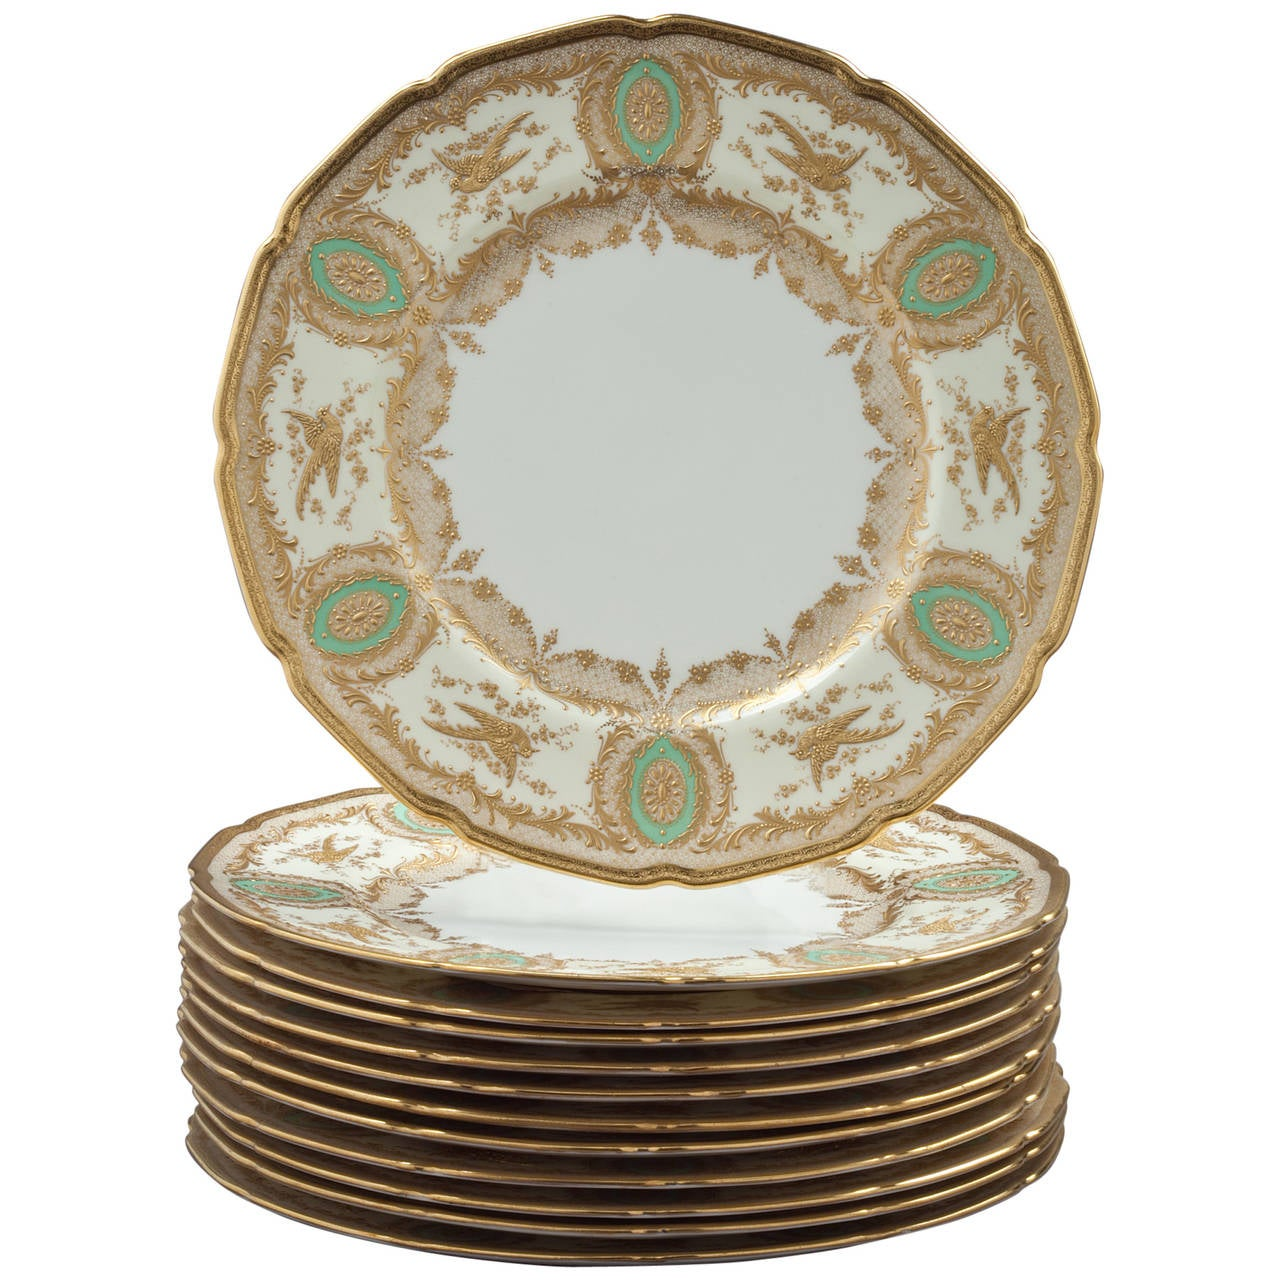 Set of 12 English Porcelain Dinner Plates Royal Doulton circa 1900 For Sale  sc 1 st  1stDibs & Set of 12 English Porcelain Dinner Plates Royal Doulton circa 1900 ...